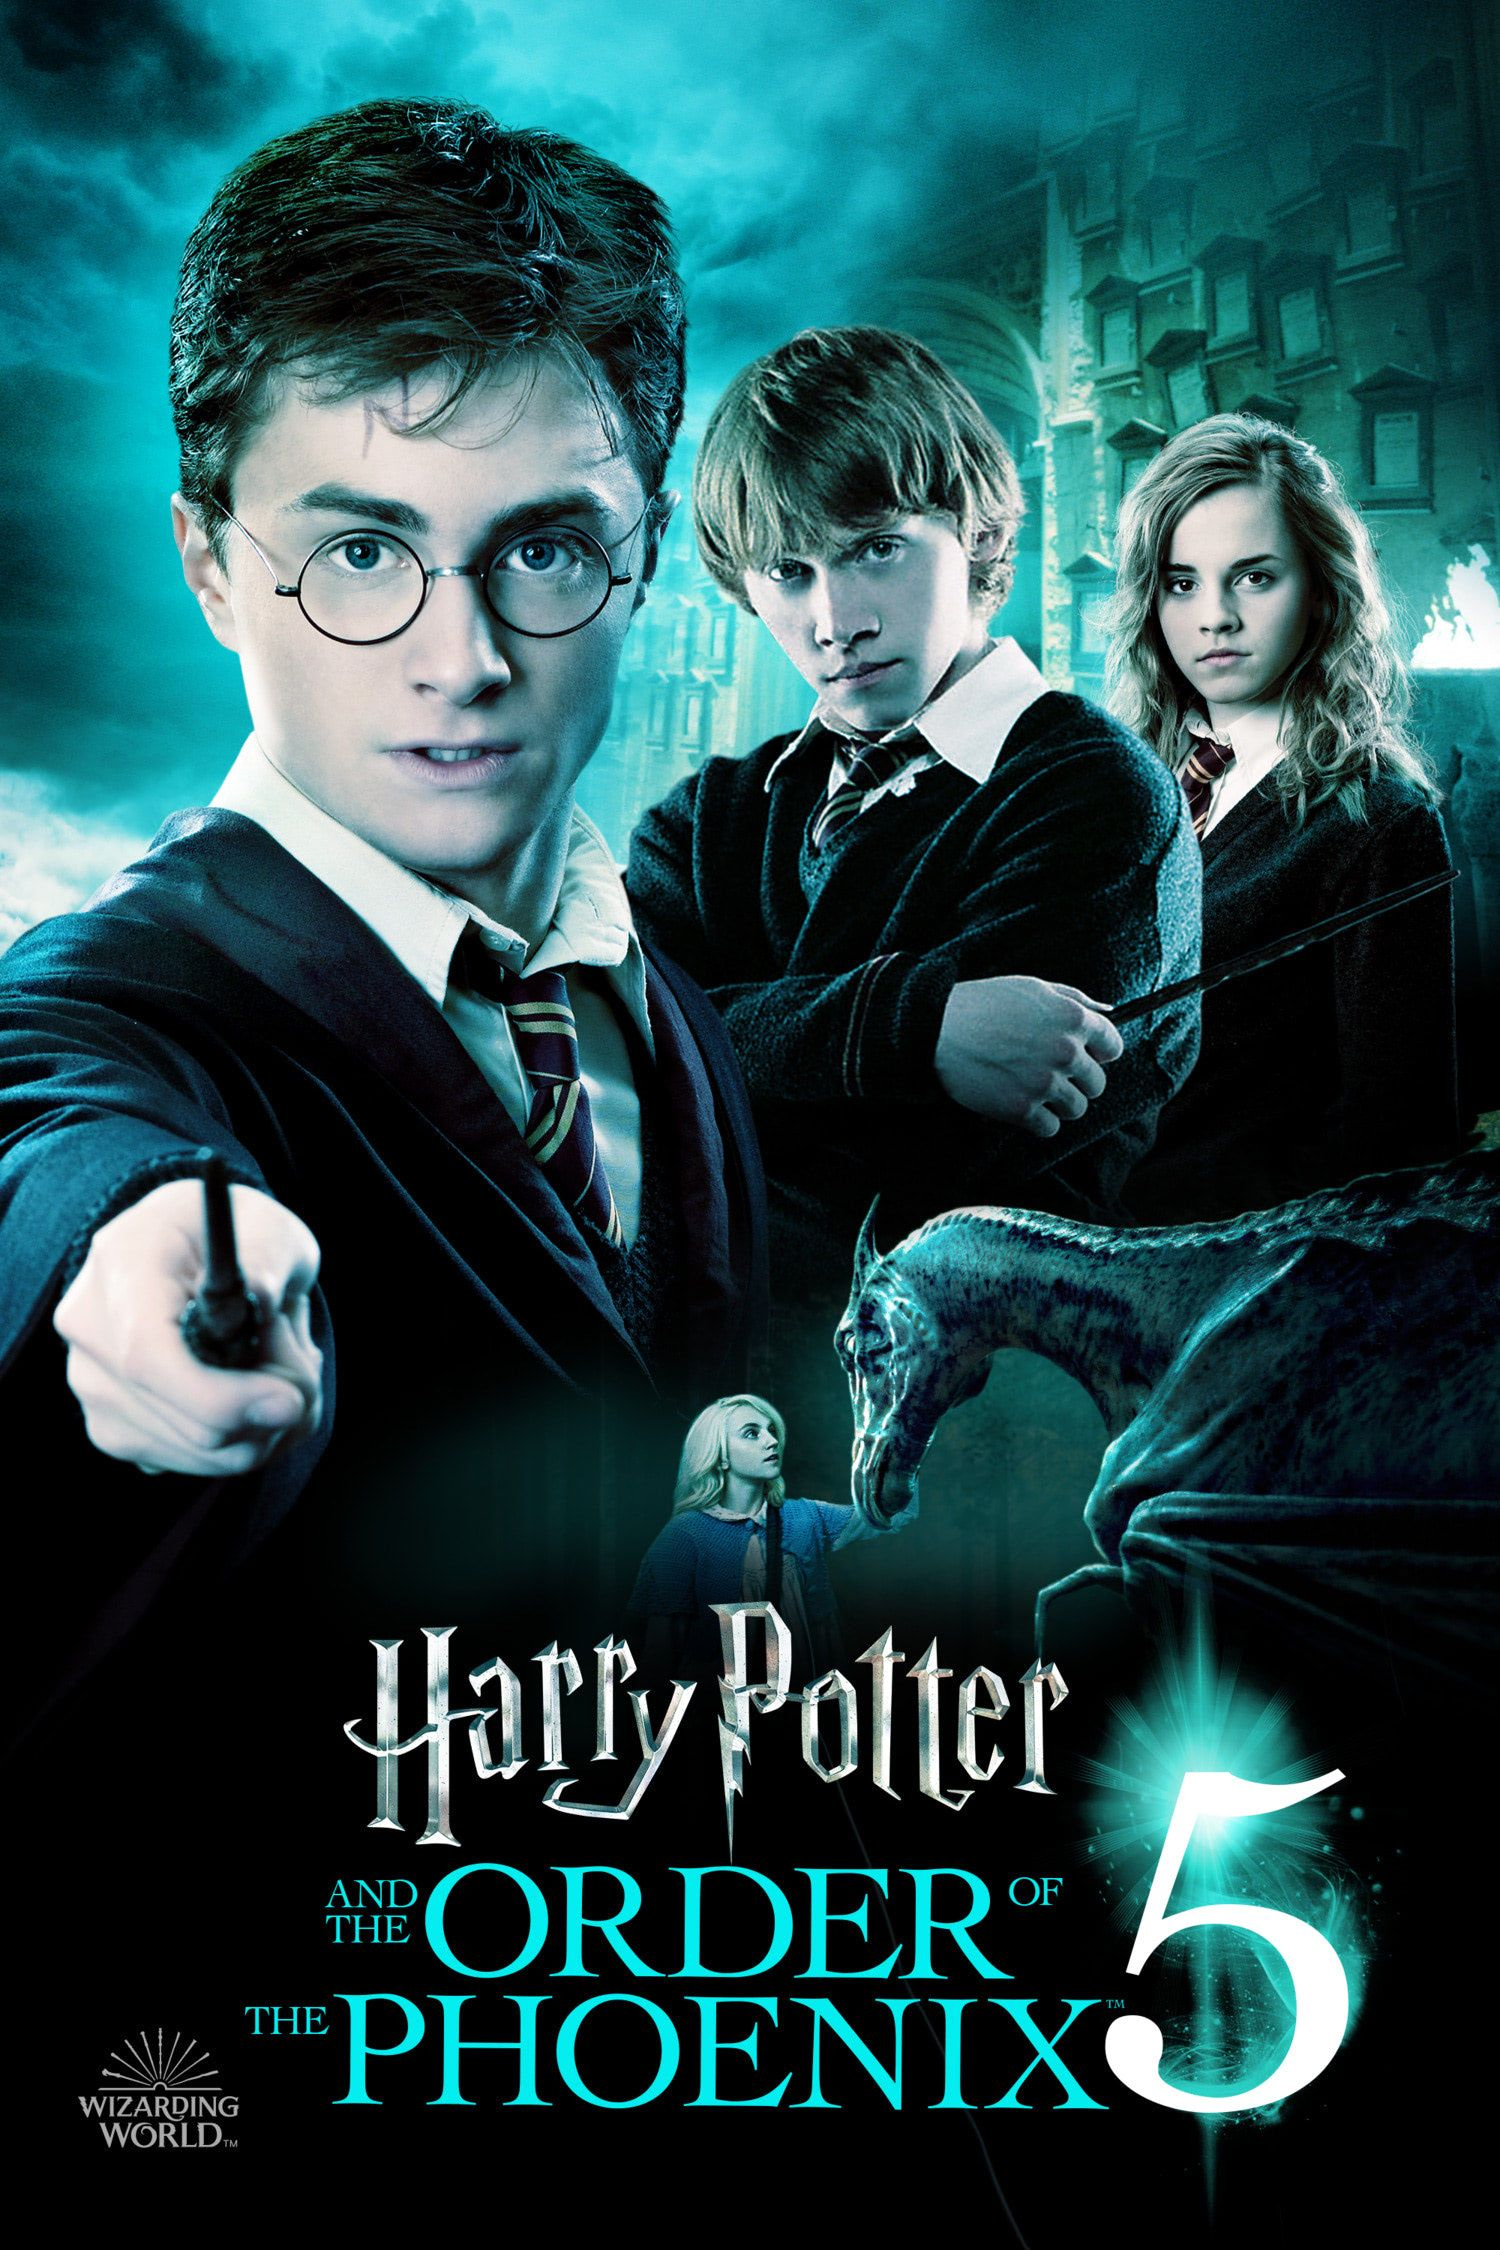 Order Of The Phoenix Wizarding World Poster Harry Potter Fan Zone Harry Potter Movie Posters Harry Potter All Movies Phoenix Harry Potter